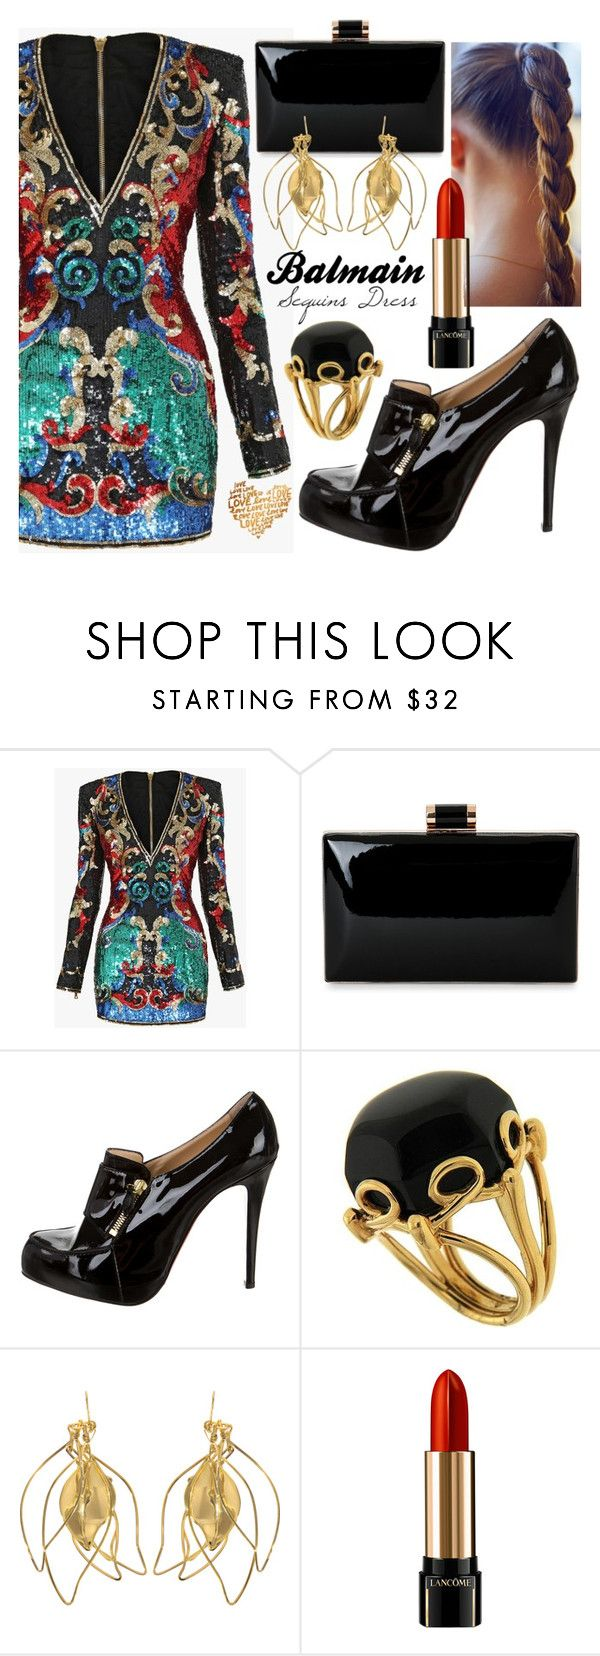 """Balmain Sequins embellished mini dress"" by elnet ❤ liked on Polyvore featuring Balmain, Christian Louboutin, Valentin Magro, Aurélie Bidermann, Lancôme and balmain"